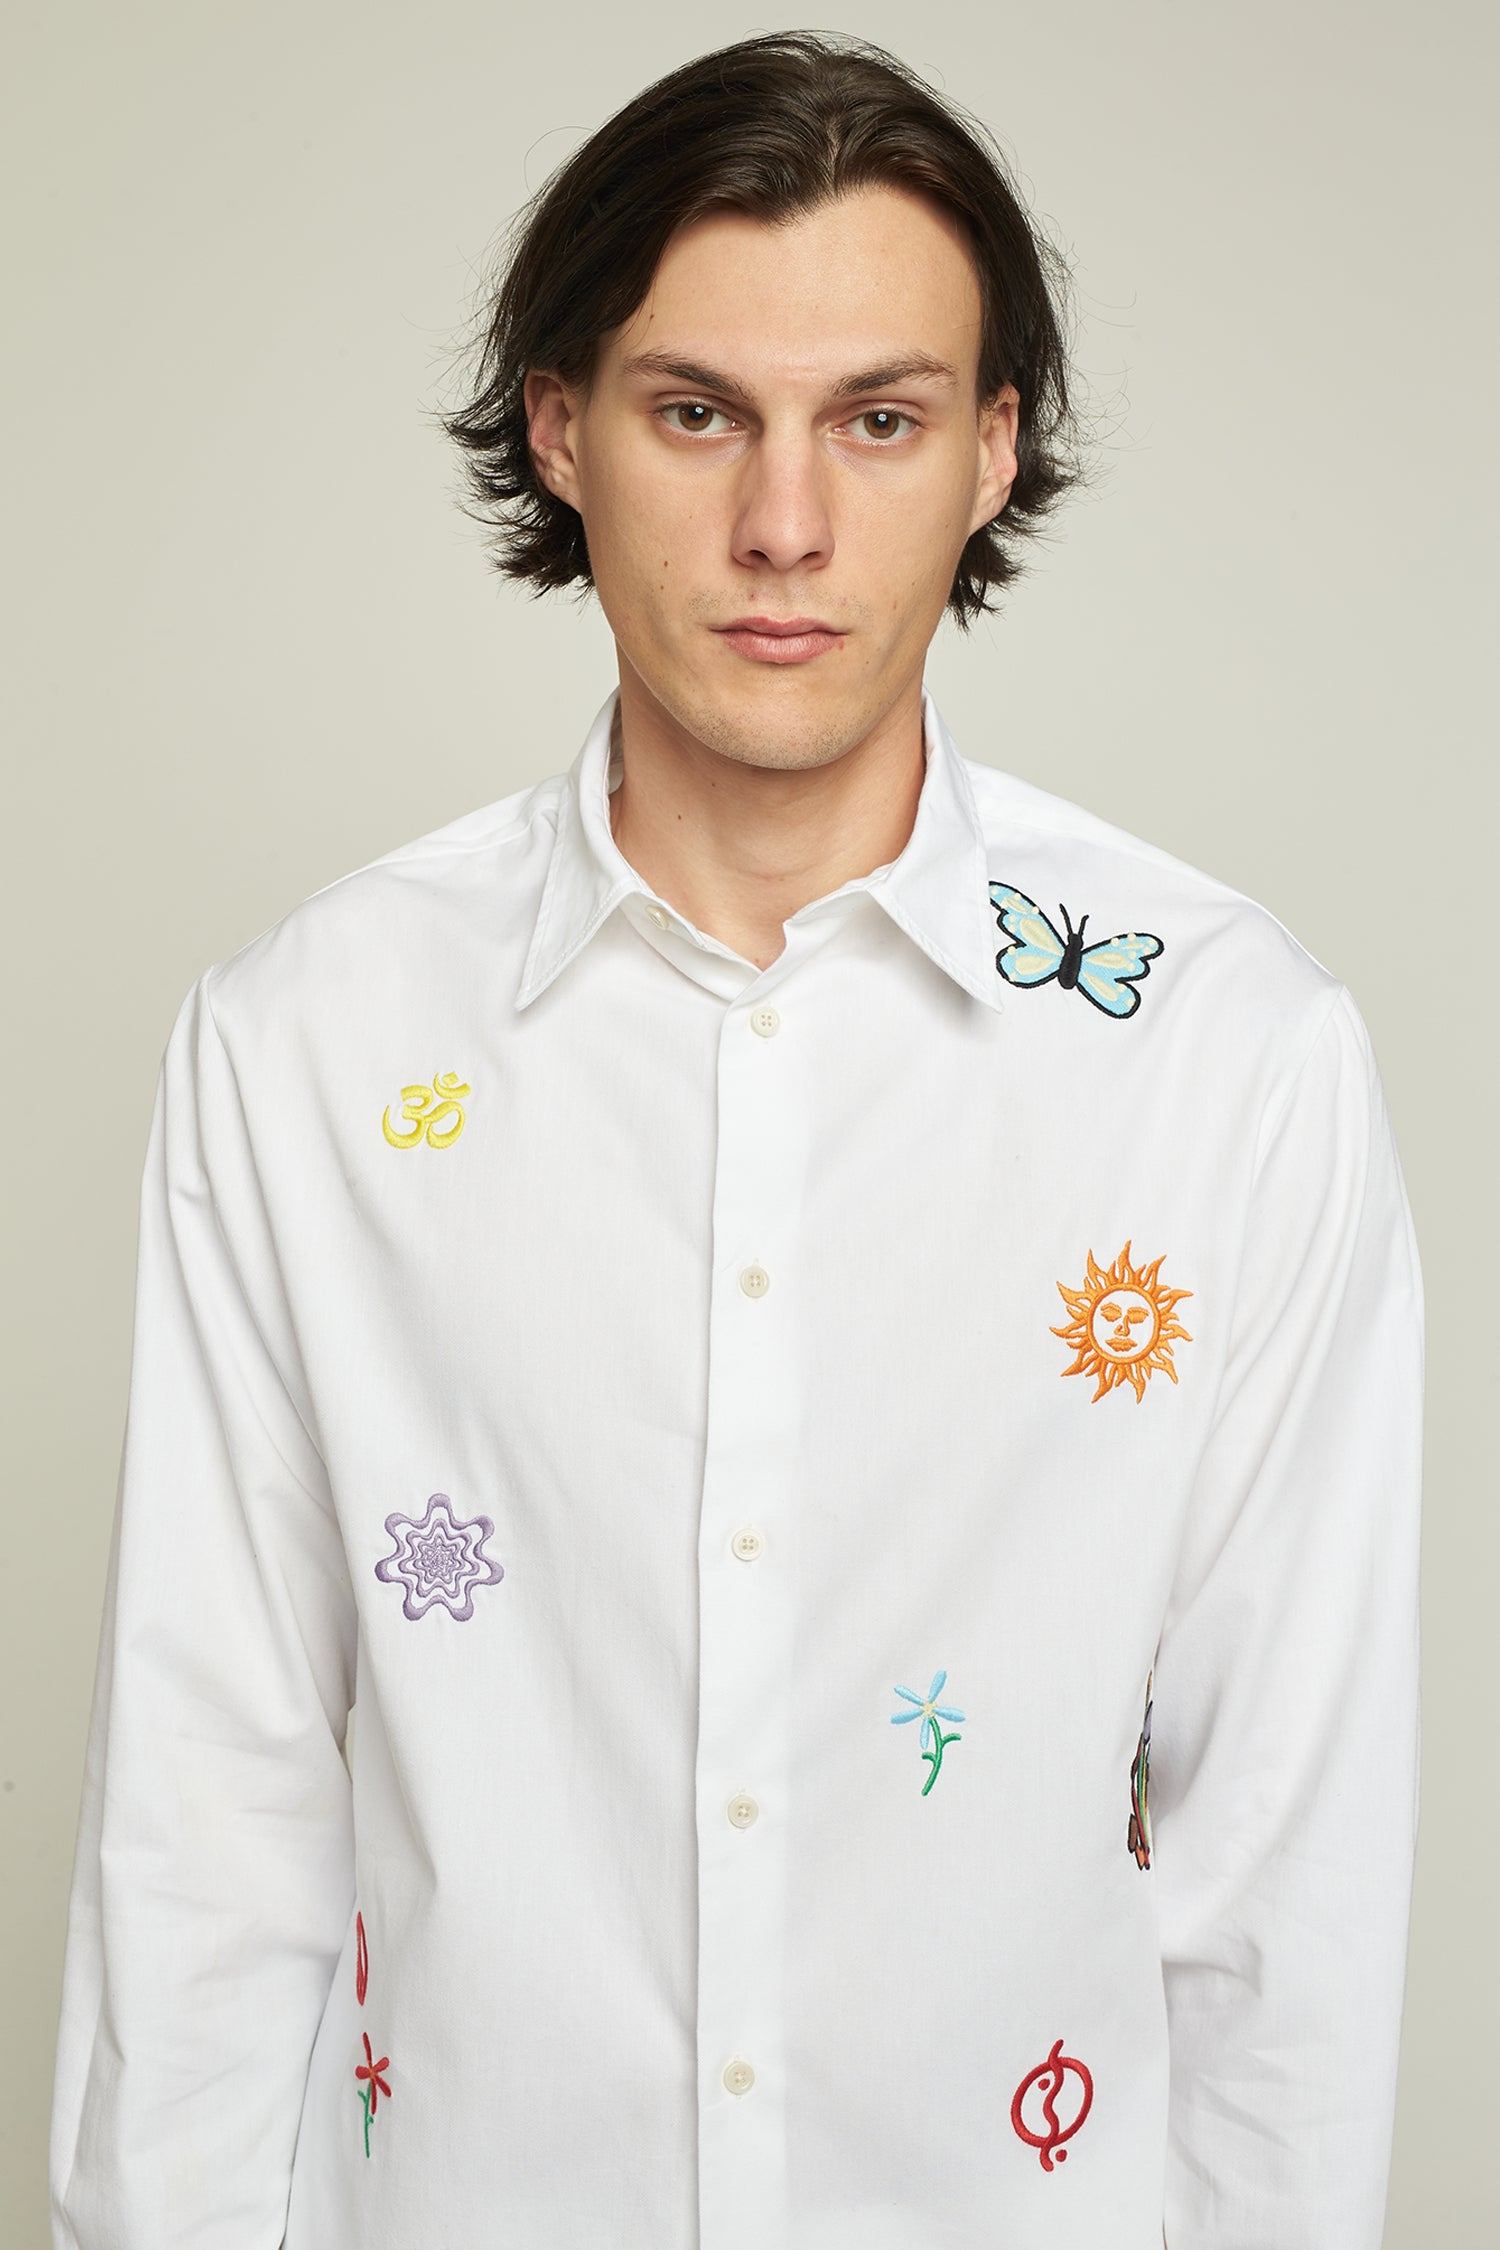 Classic fit white shirt, recycled cotton and embroidery.